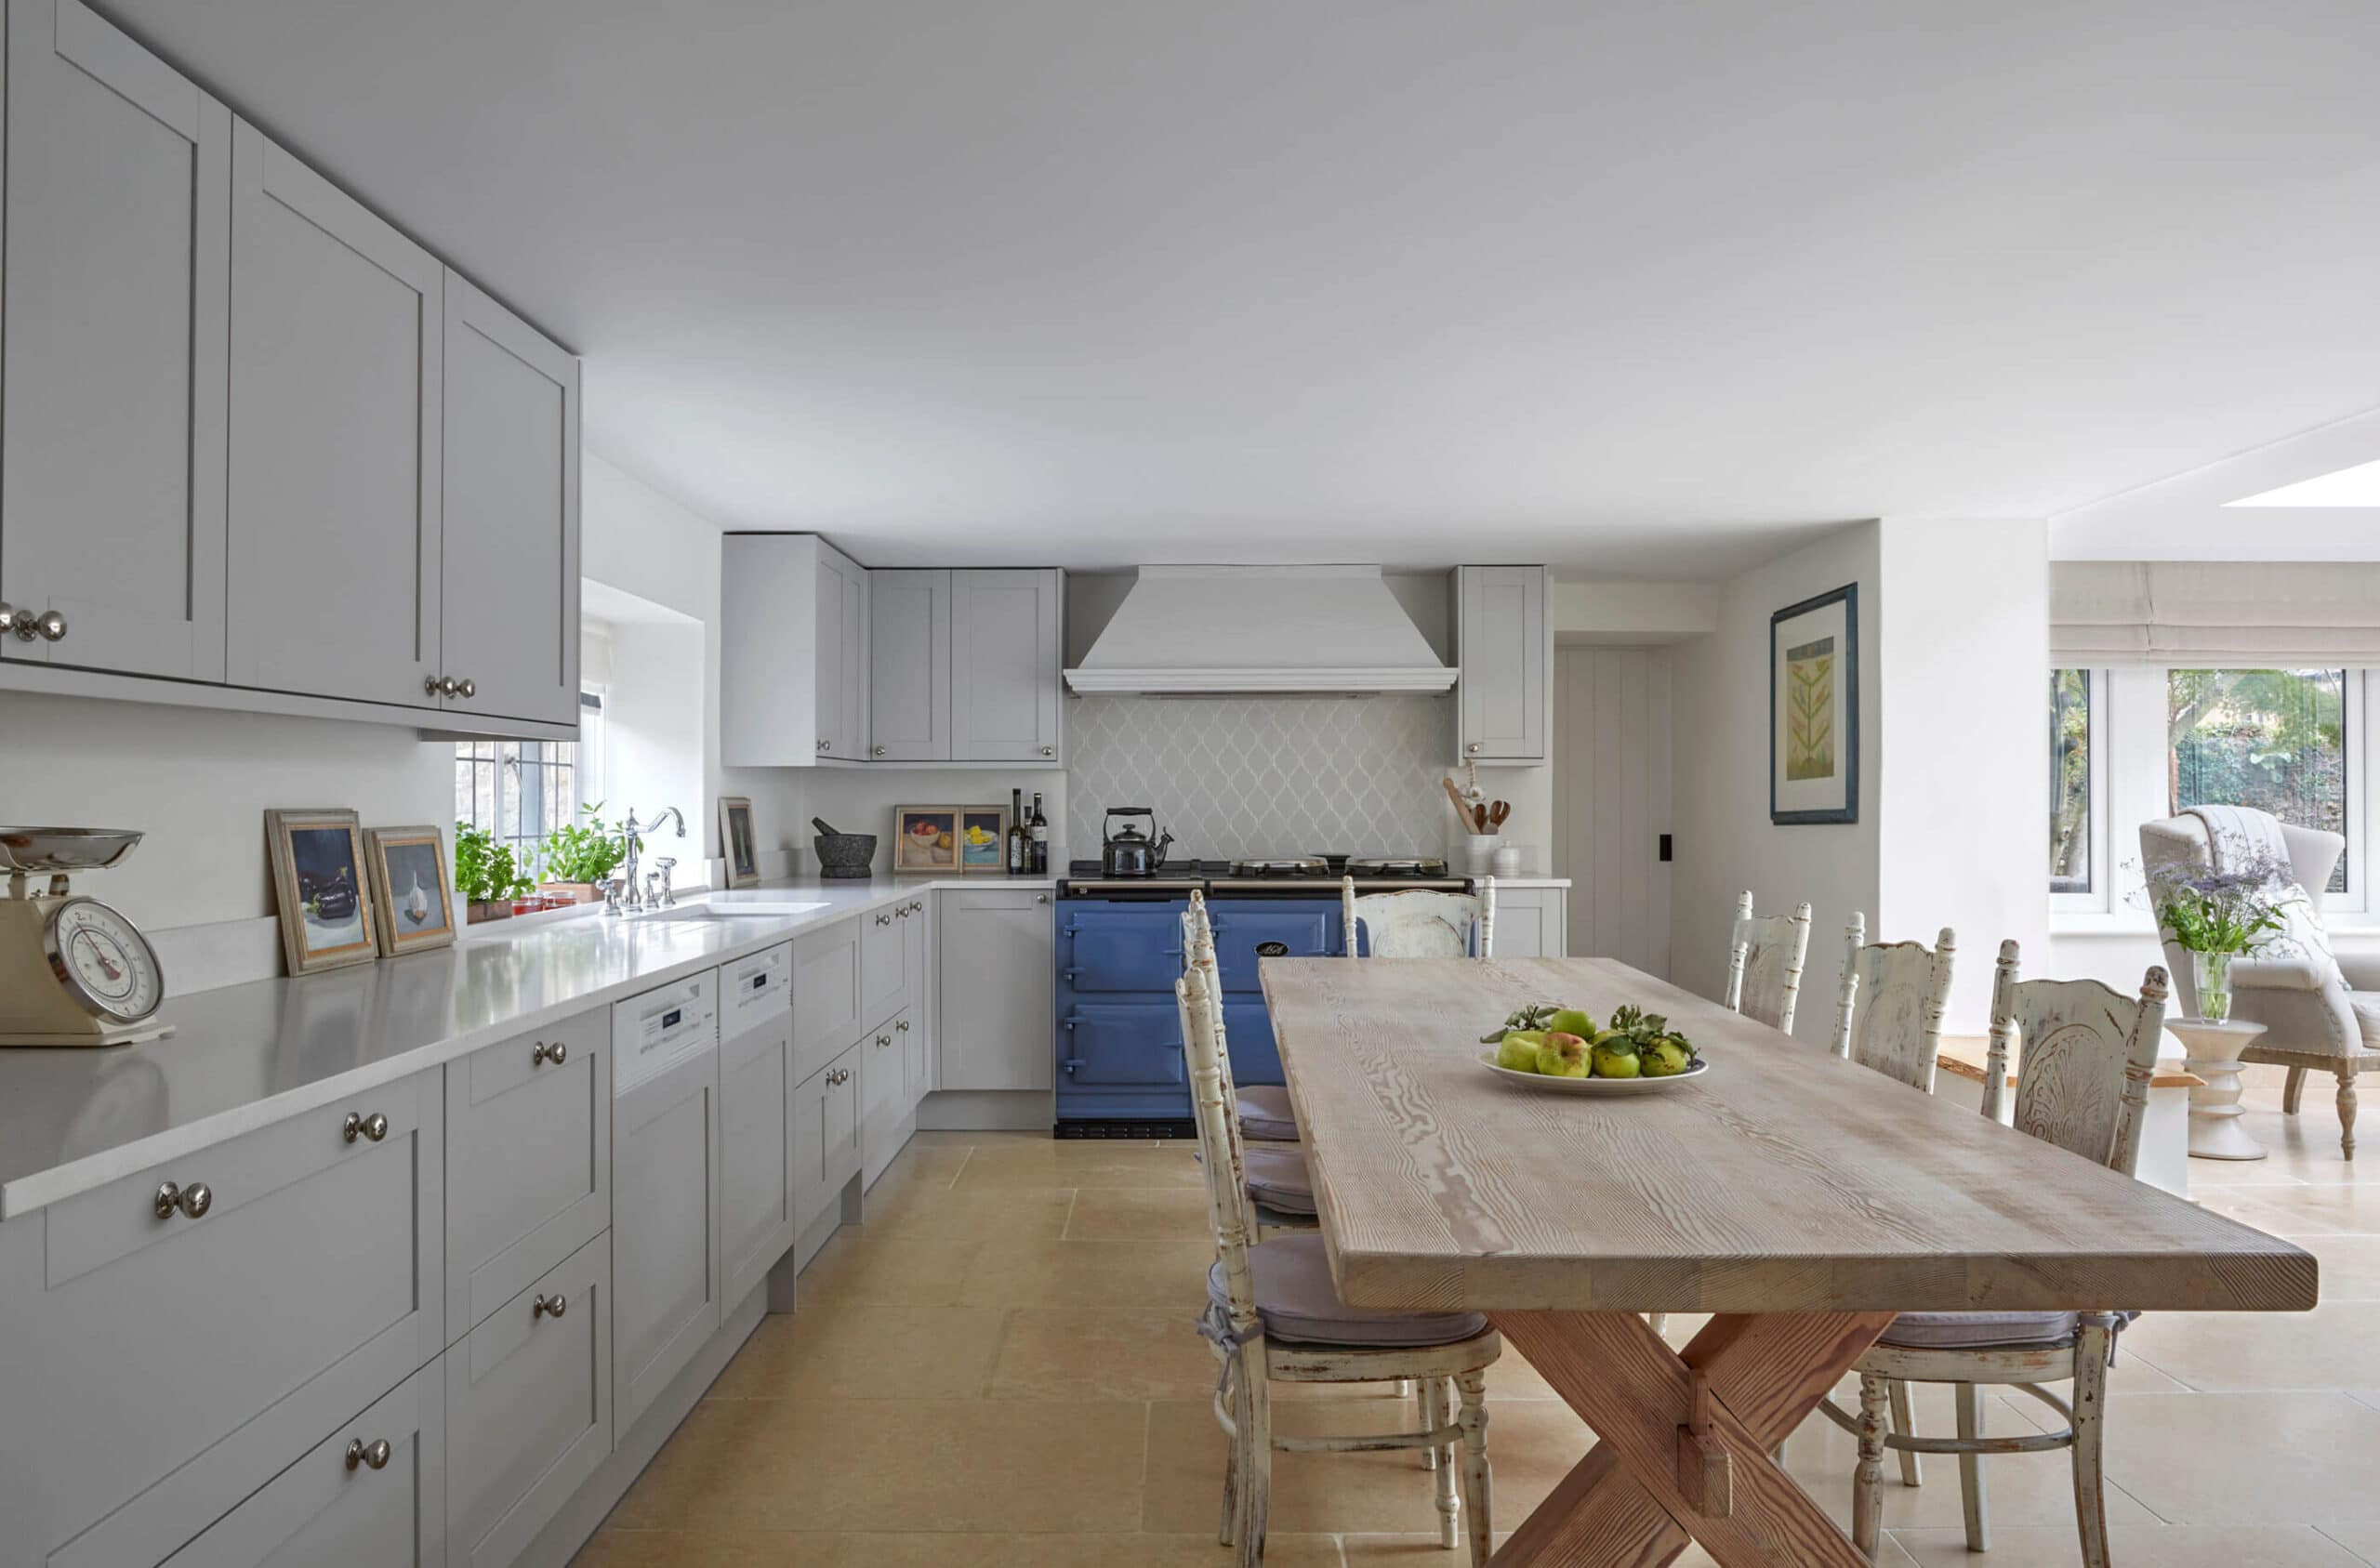 Luxury kitchen in family country home